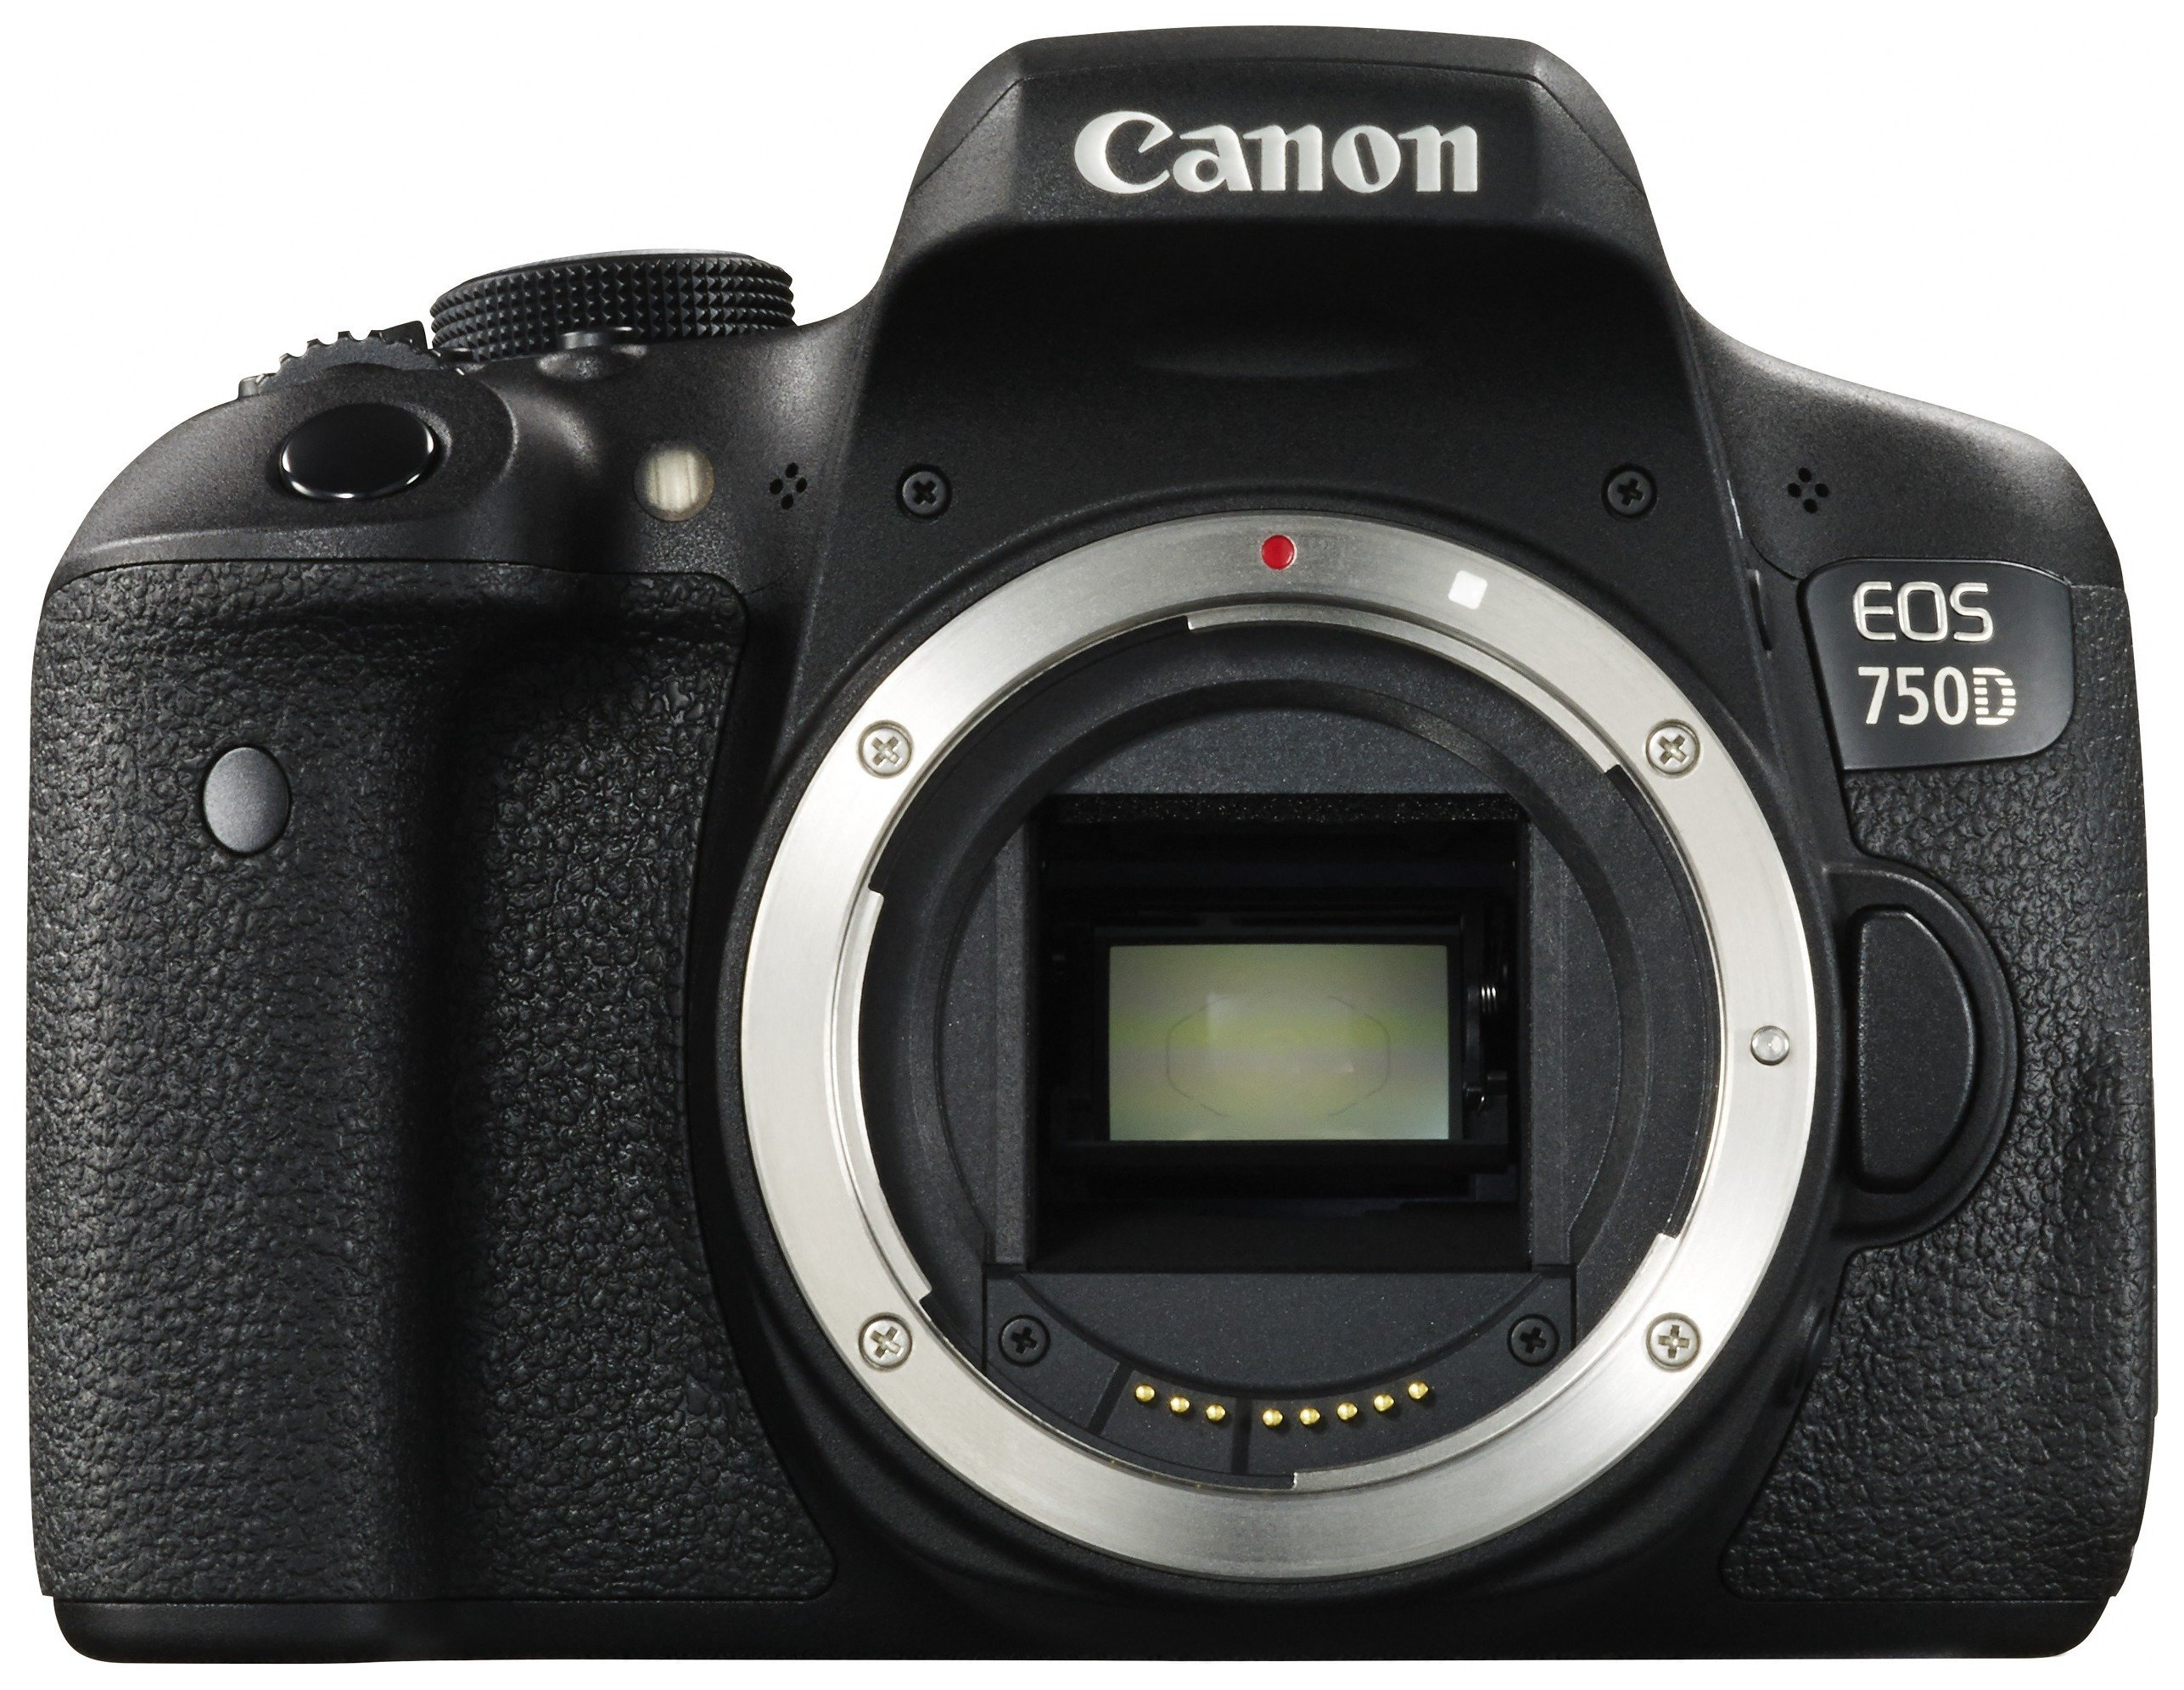 Image of Canon EOS 750D DSLR Camera 24.2MP - Body Only